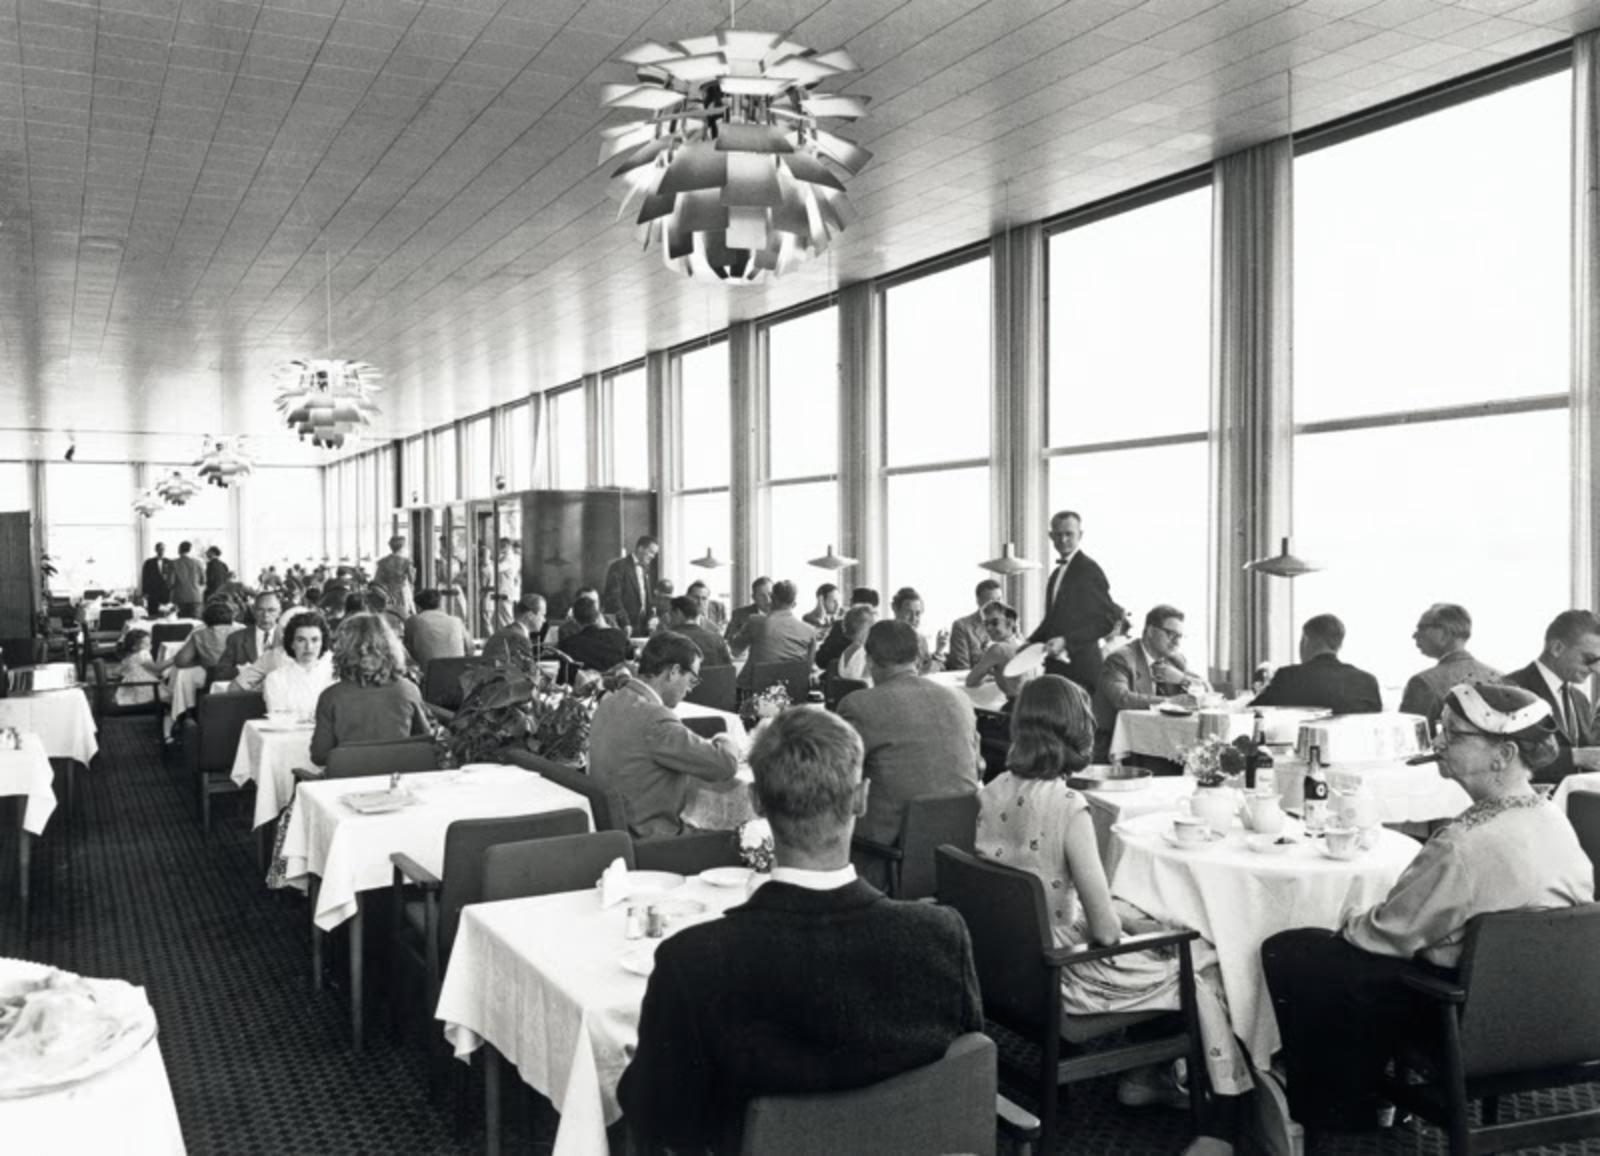 The Langelinie Pavilion in 1958 with the newly installed PH Artichokes.  Photo 2 of 7 in The Lighting Fixture That Inspired A High-Stakes Heist: The PH Artichoke